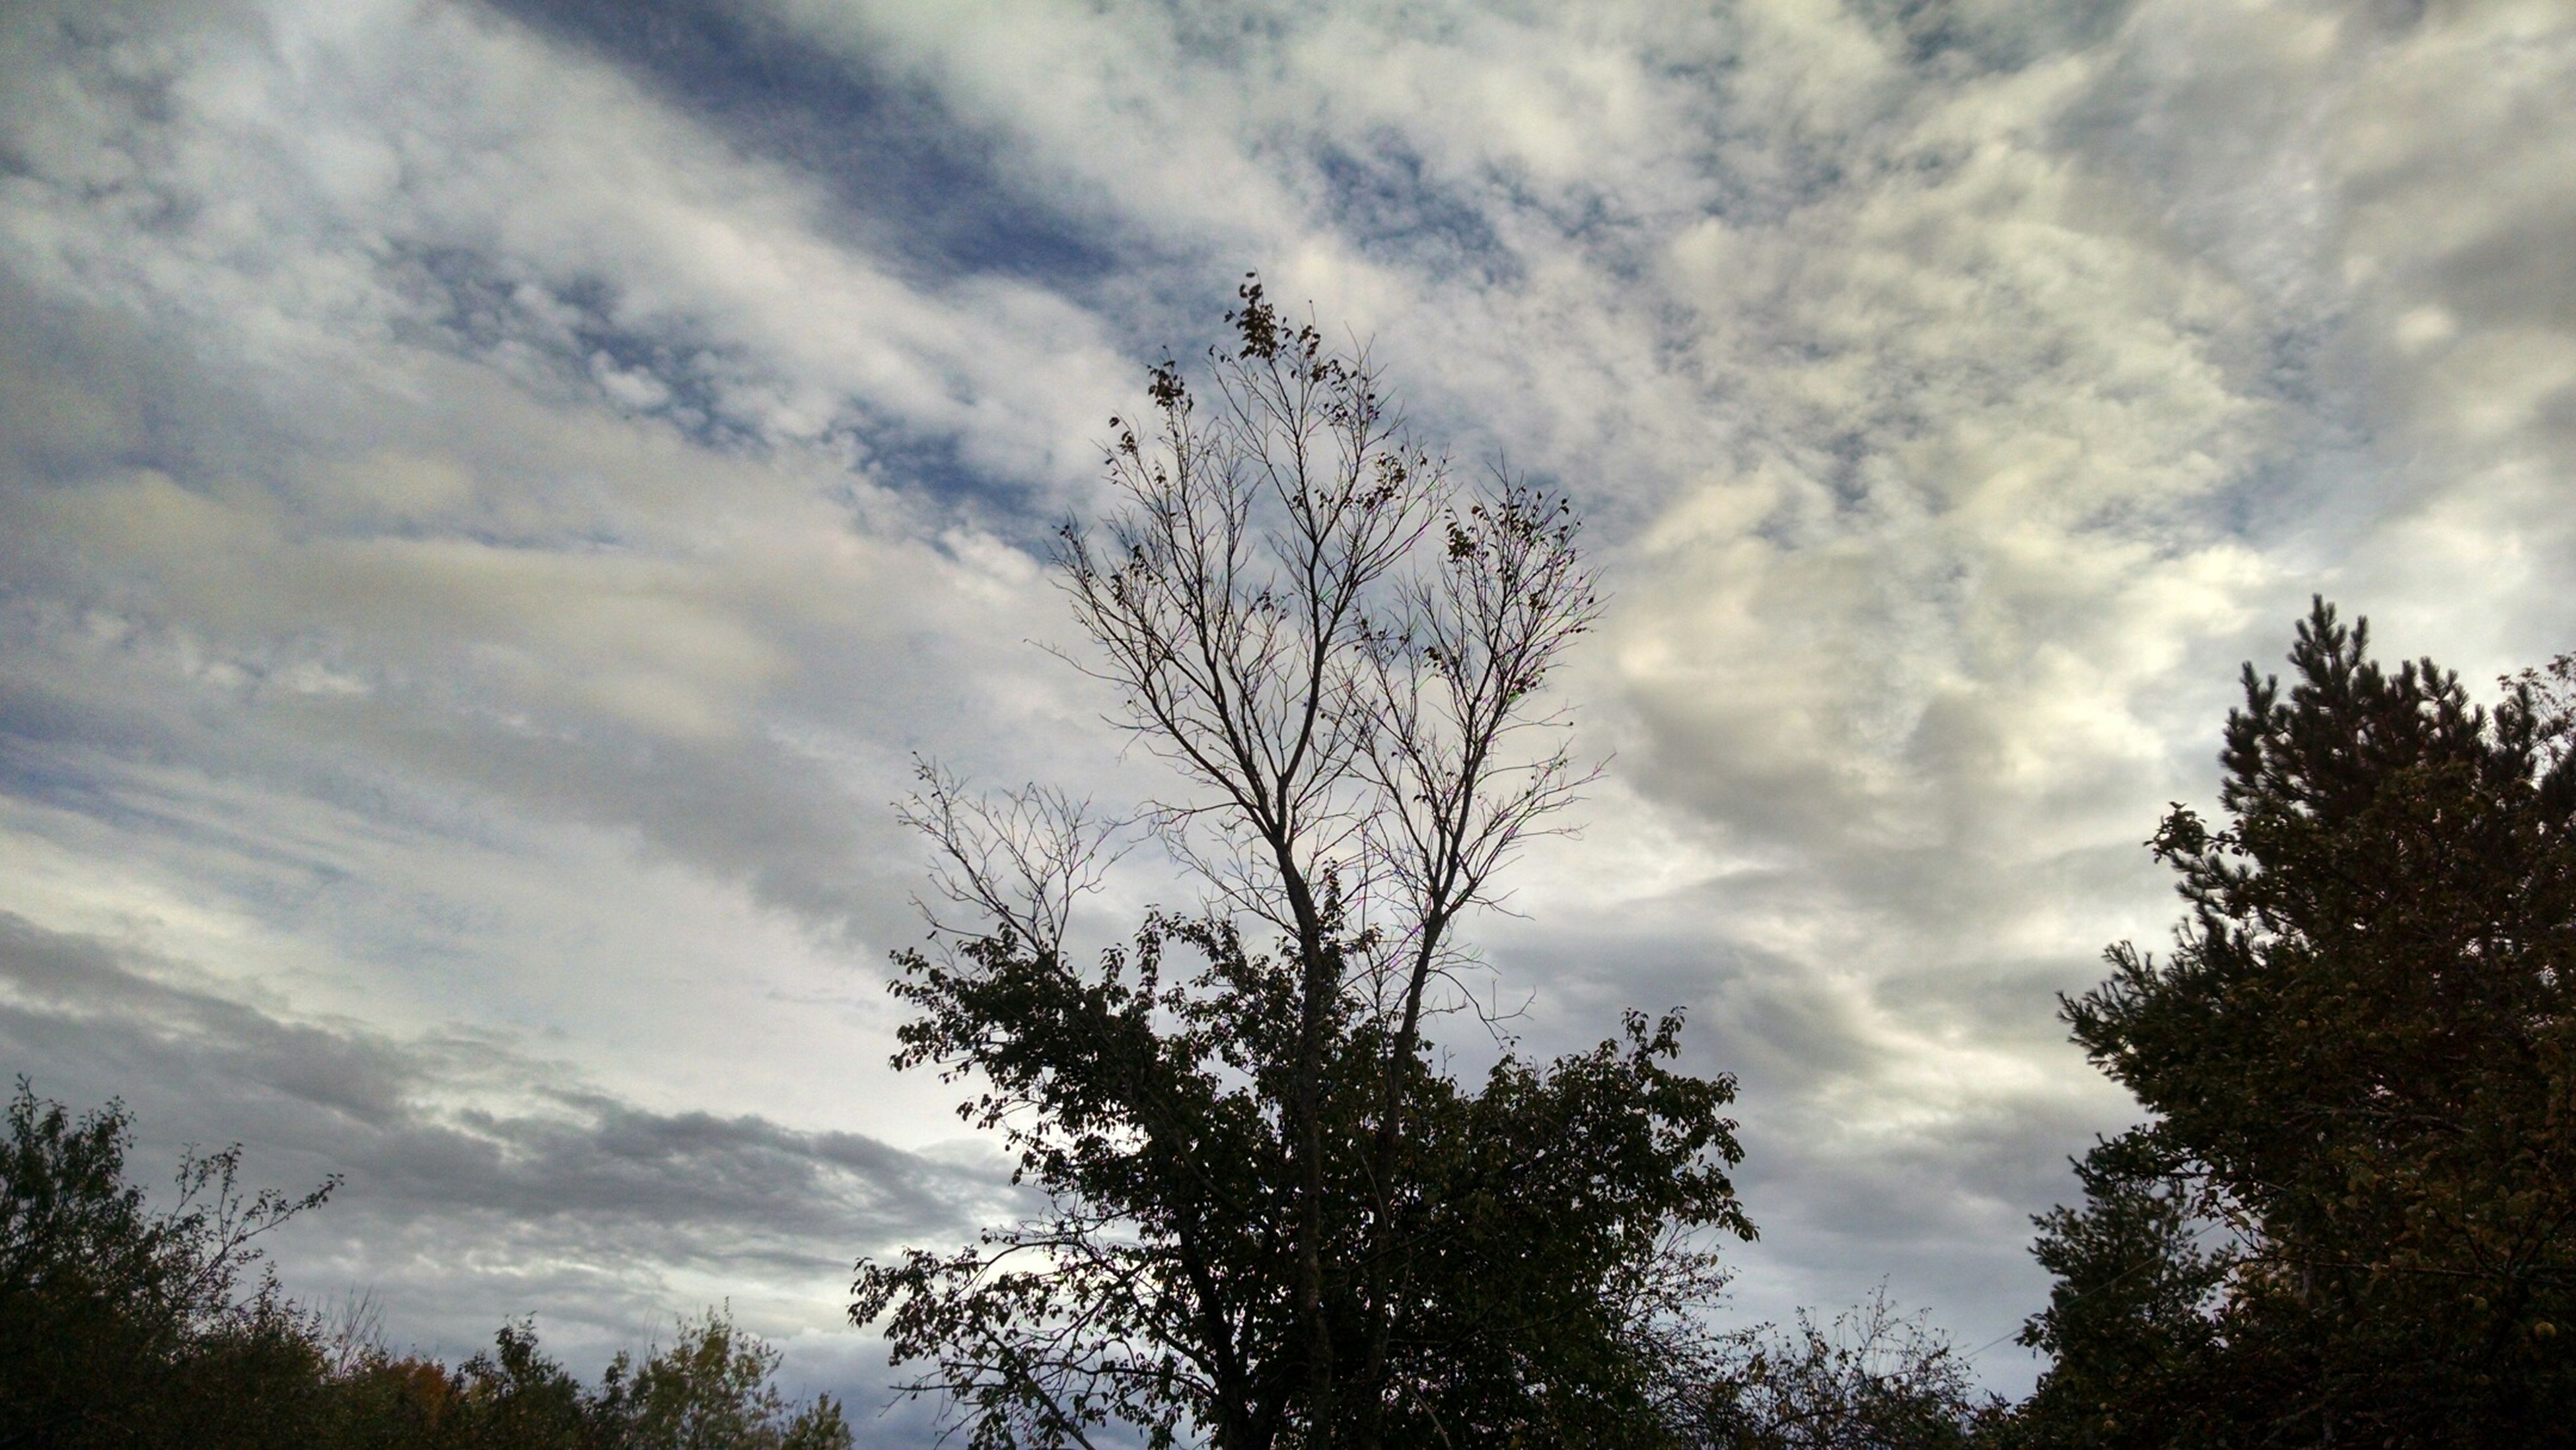 tree, low angle view, sky, cloud - sky, silhouette, tranquility, cloudy, branch, beauty in nature, bare tree, nature, cloud, tranquil scene, scenics, growth, outdoors, no people, day, treetop, high section